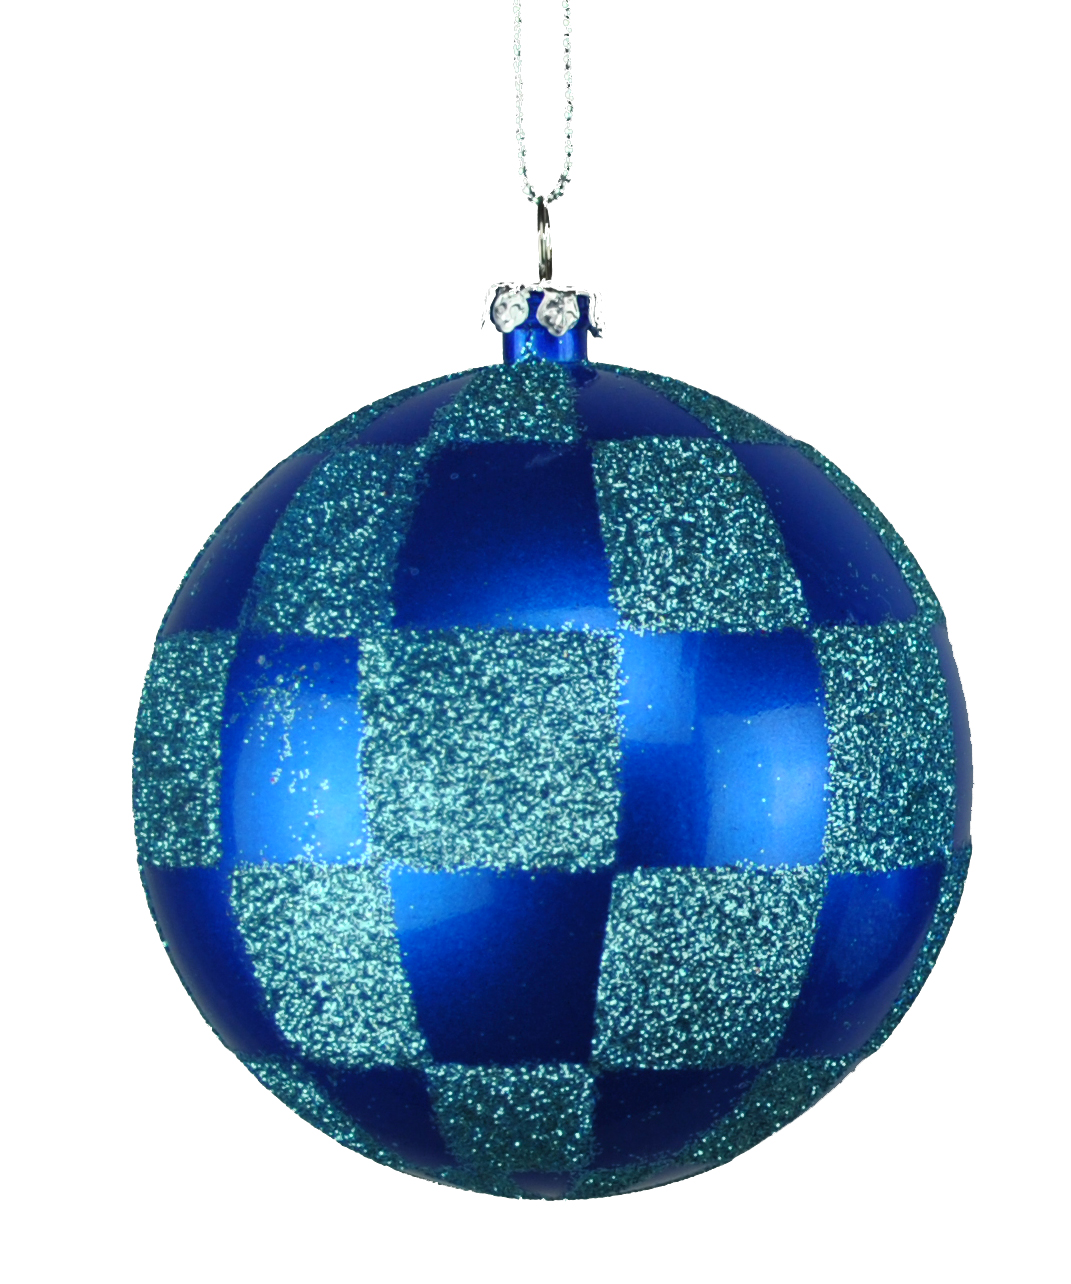 80MM BLUE & TEAL CHECKER BALL ORNAMENT